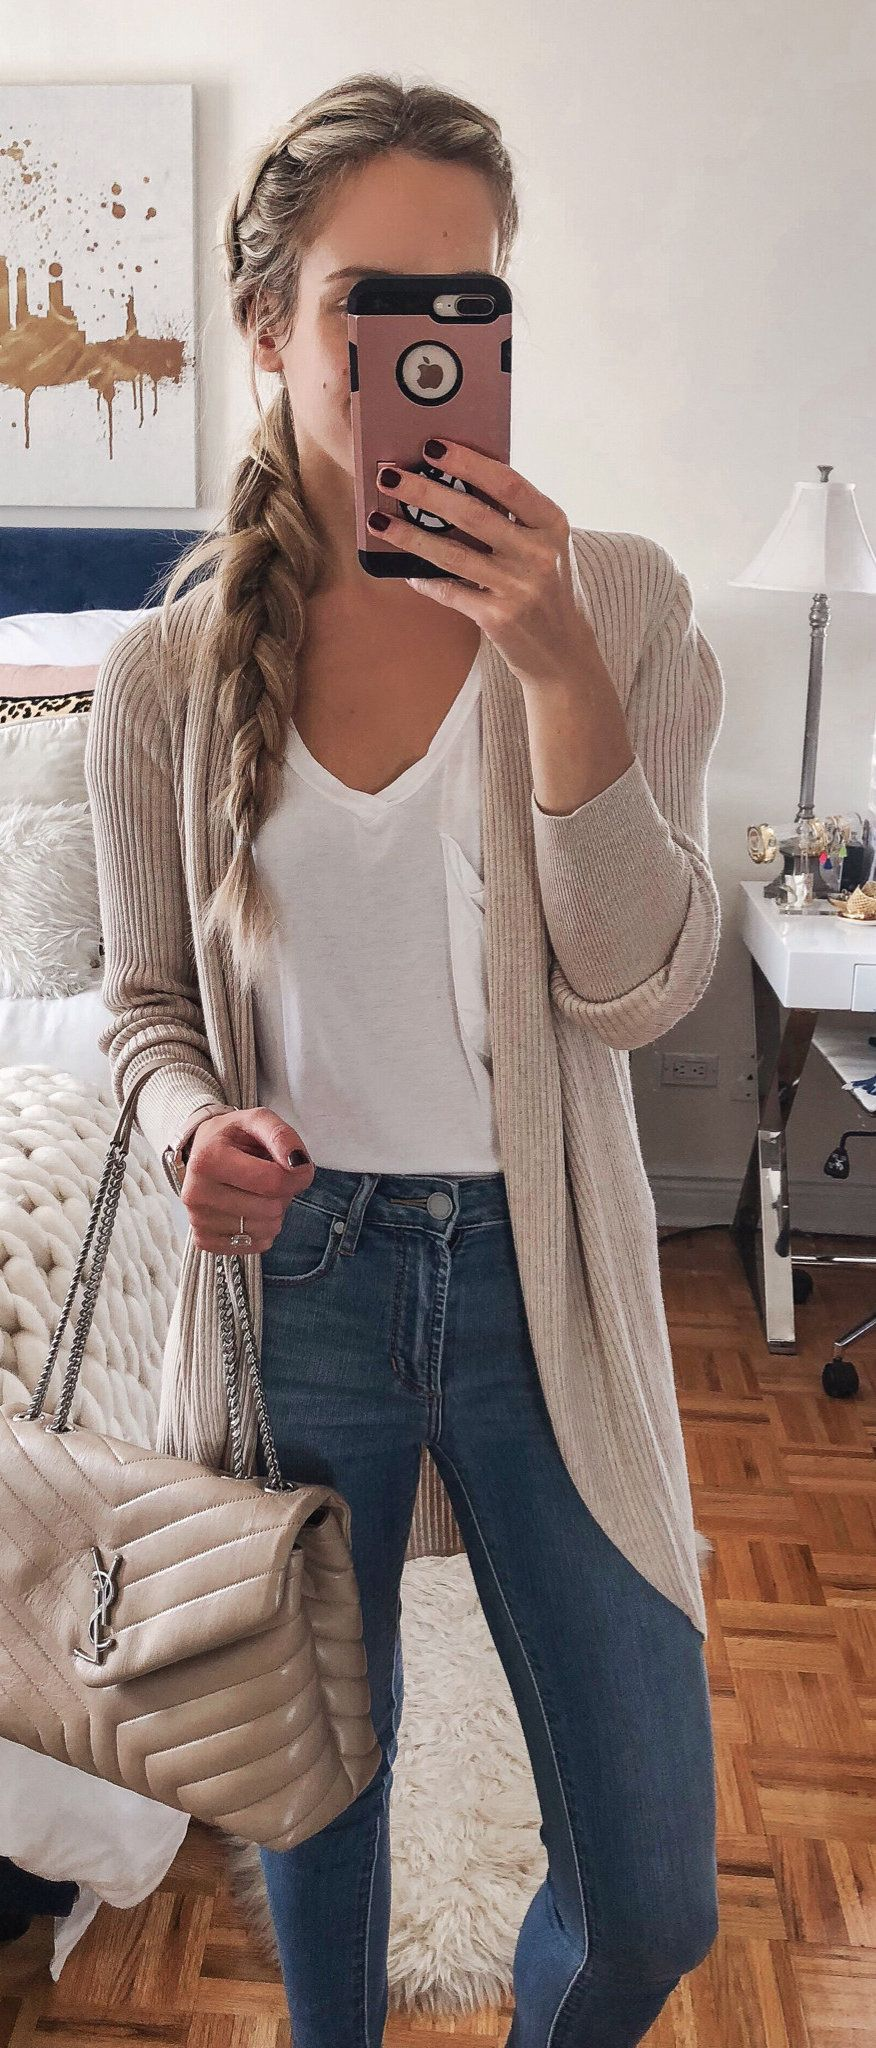 gray long-sleeved cardigan and white V-neck shirt